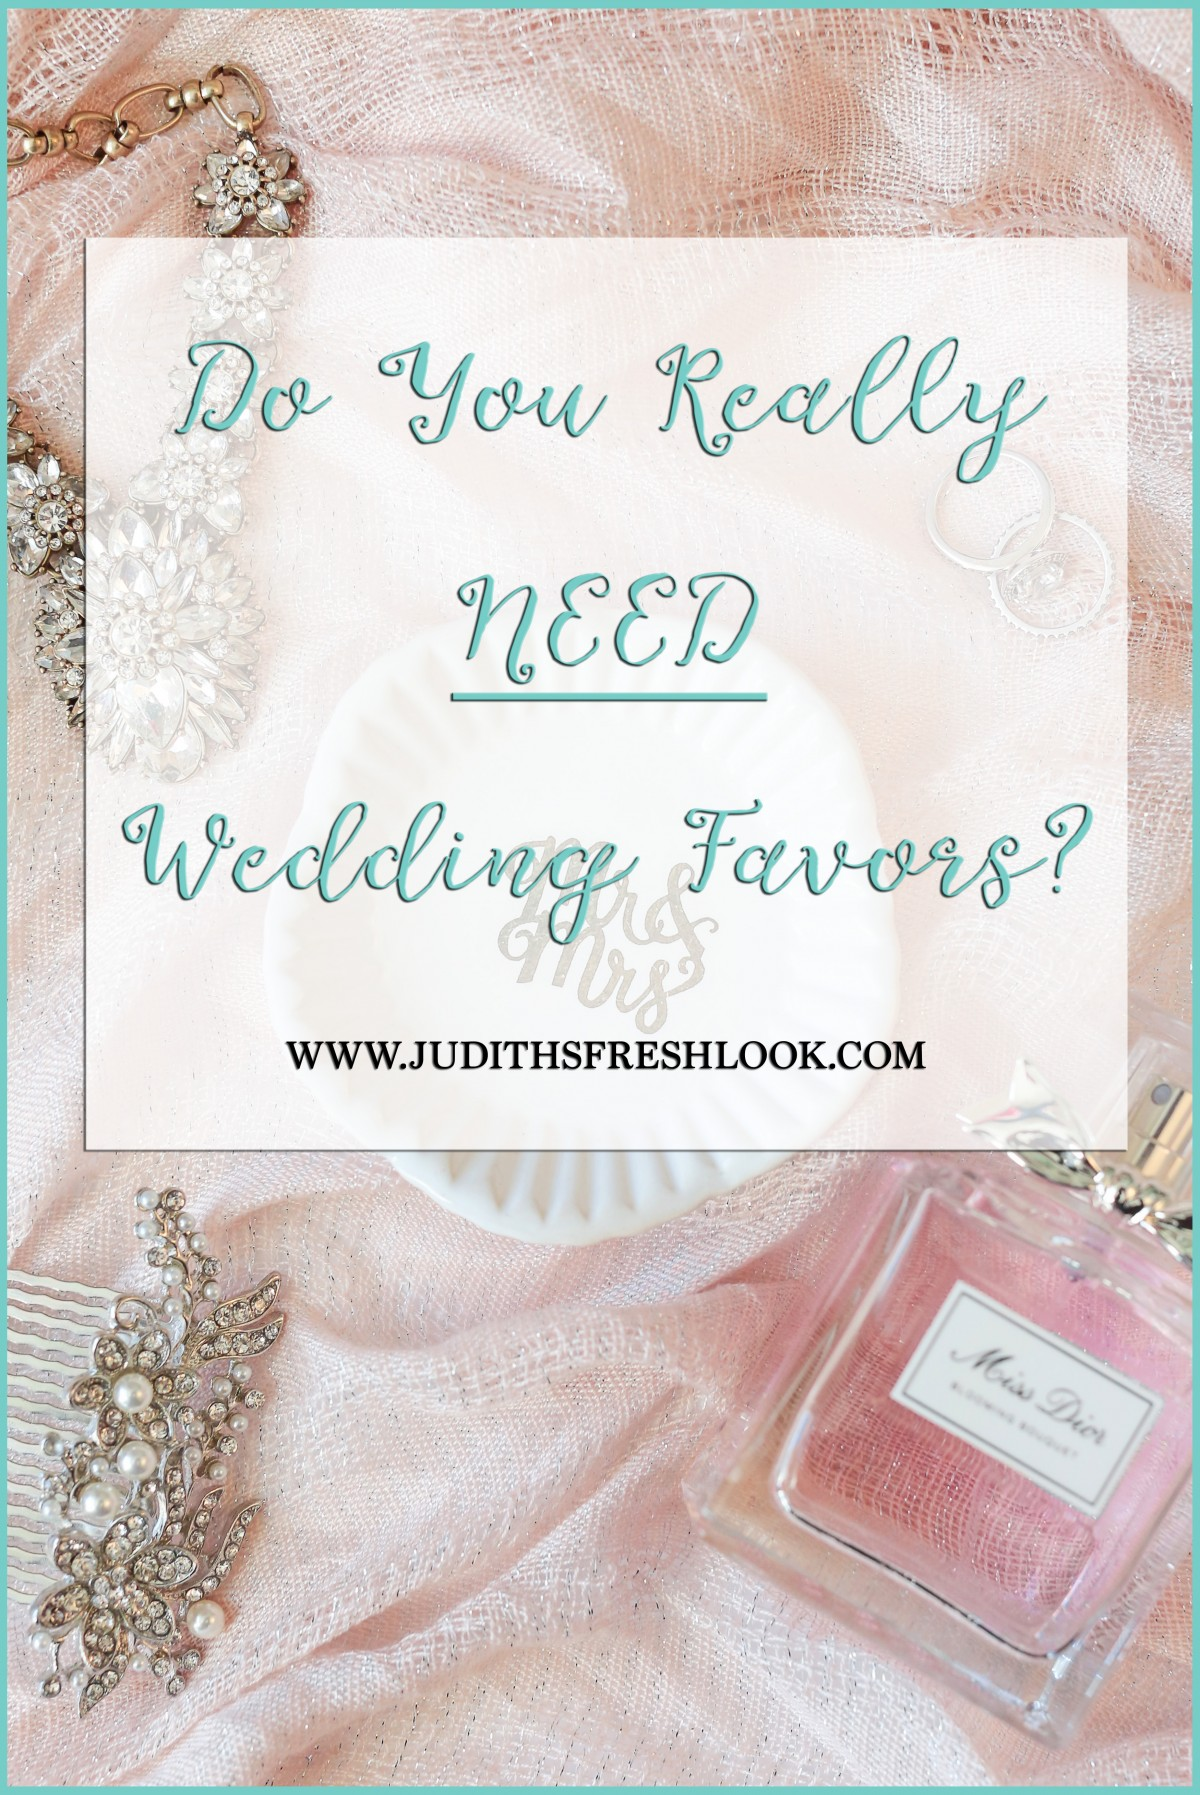 Need Wedding Favors? | Confessions of a Bride - JudithsFreshLook.com